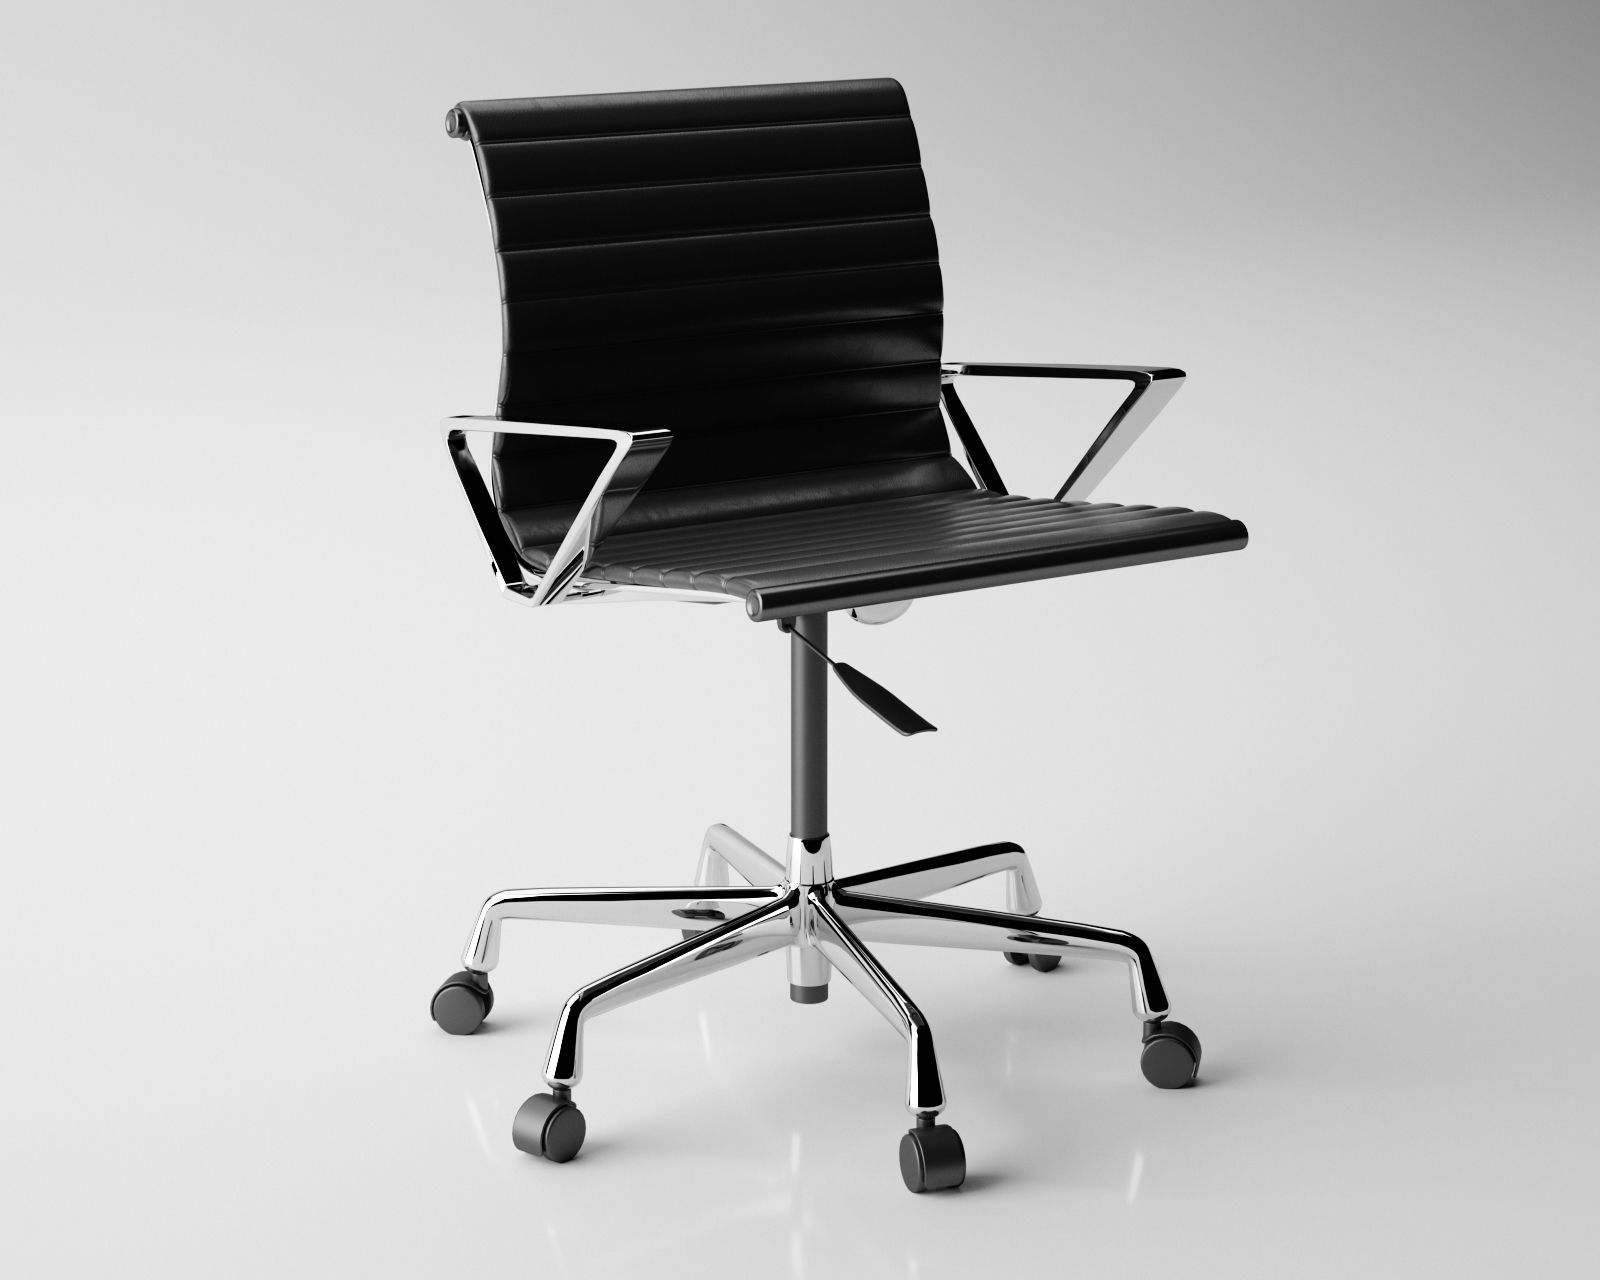 Office Chair Elecwish Office Executive Swivel Chair 02 3d Model